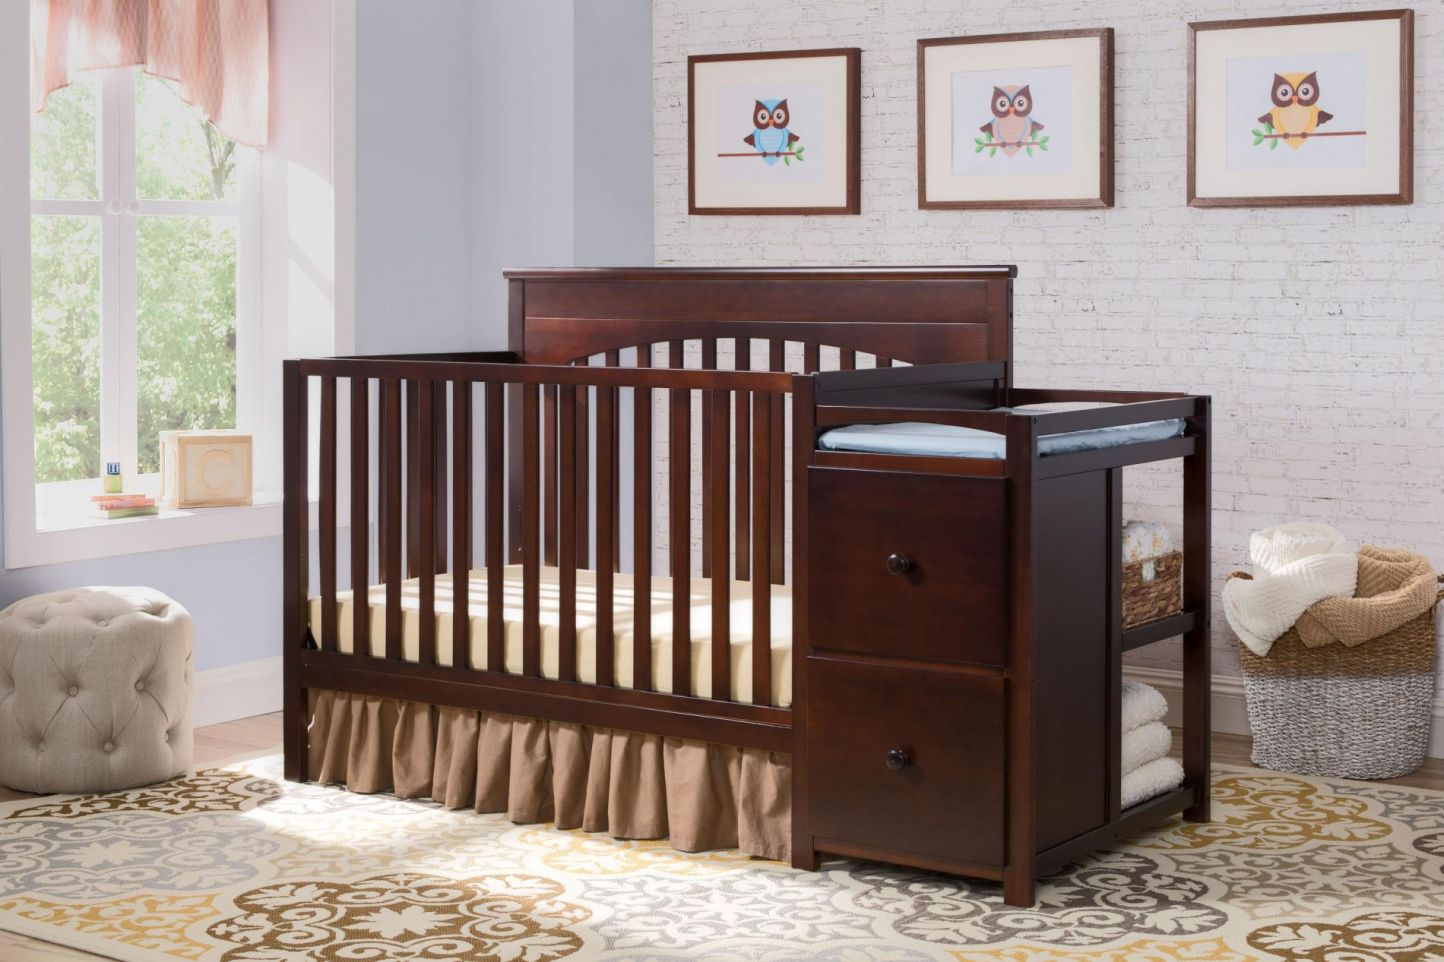 furniture baby piquant sets bedding chocolate cupboard set mg without crib girl boots target toger smartly wood cribs